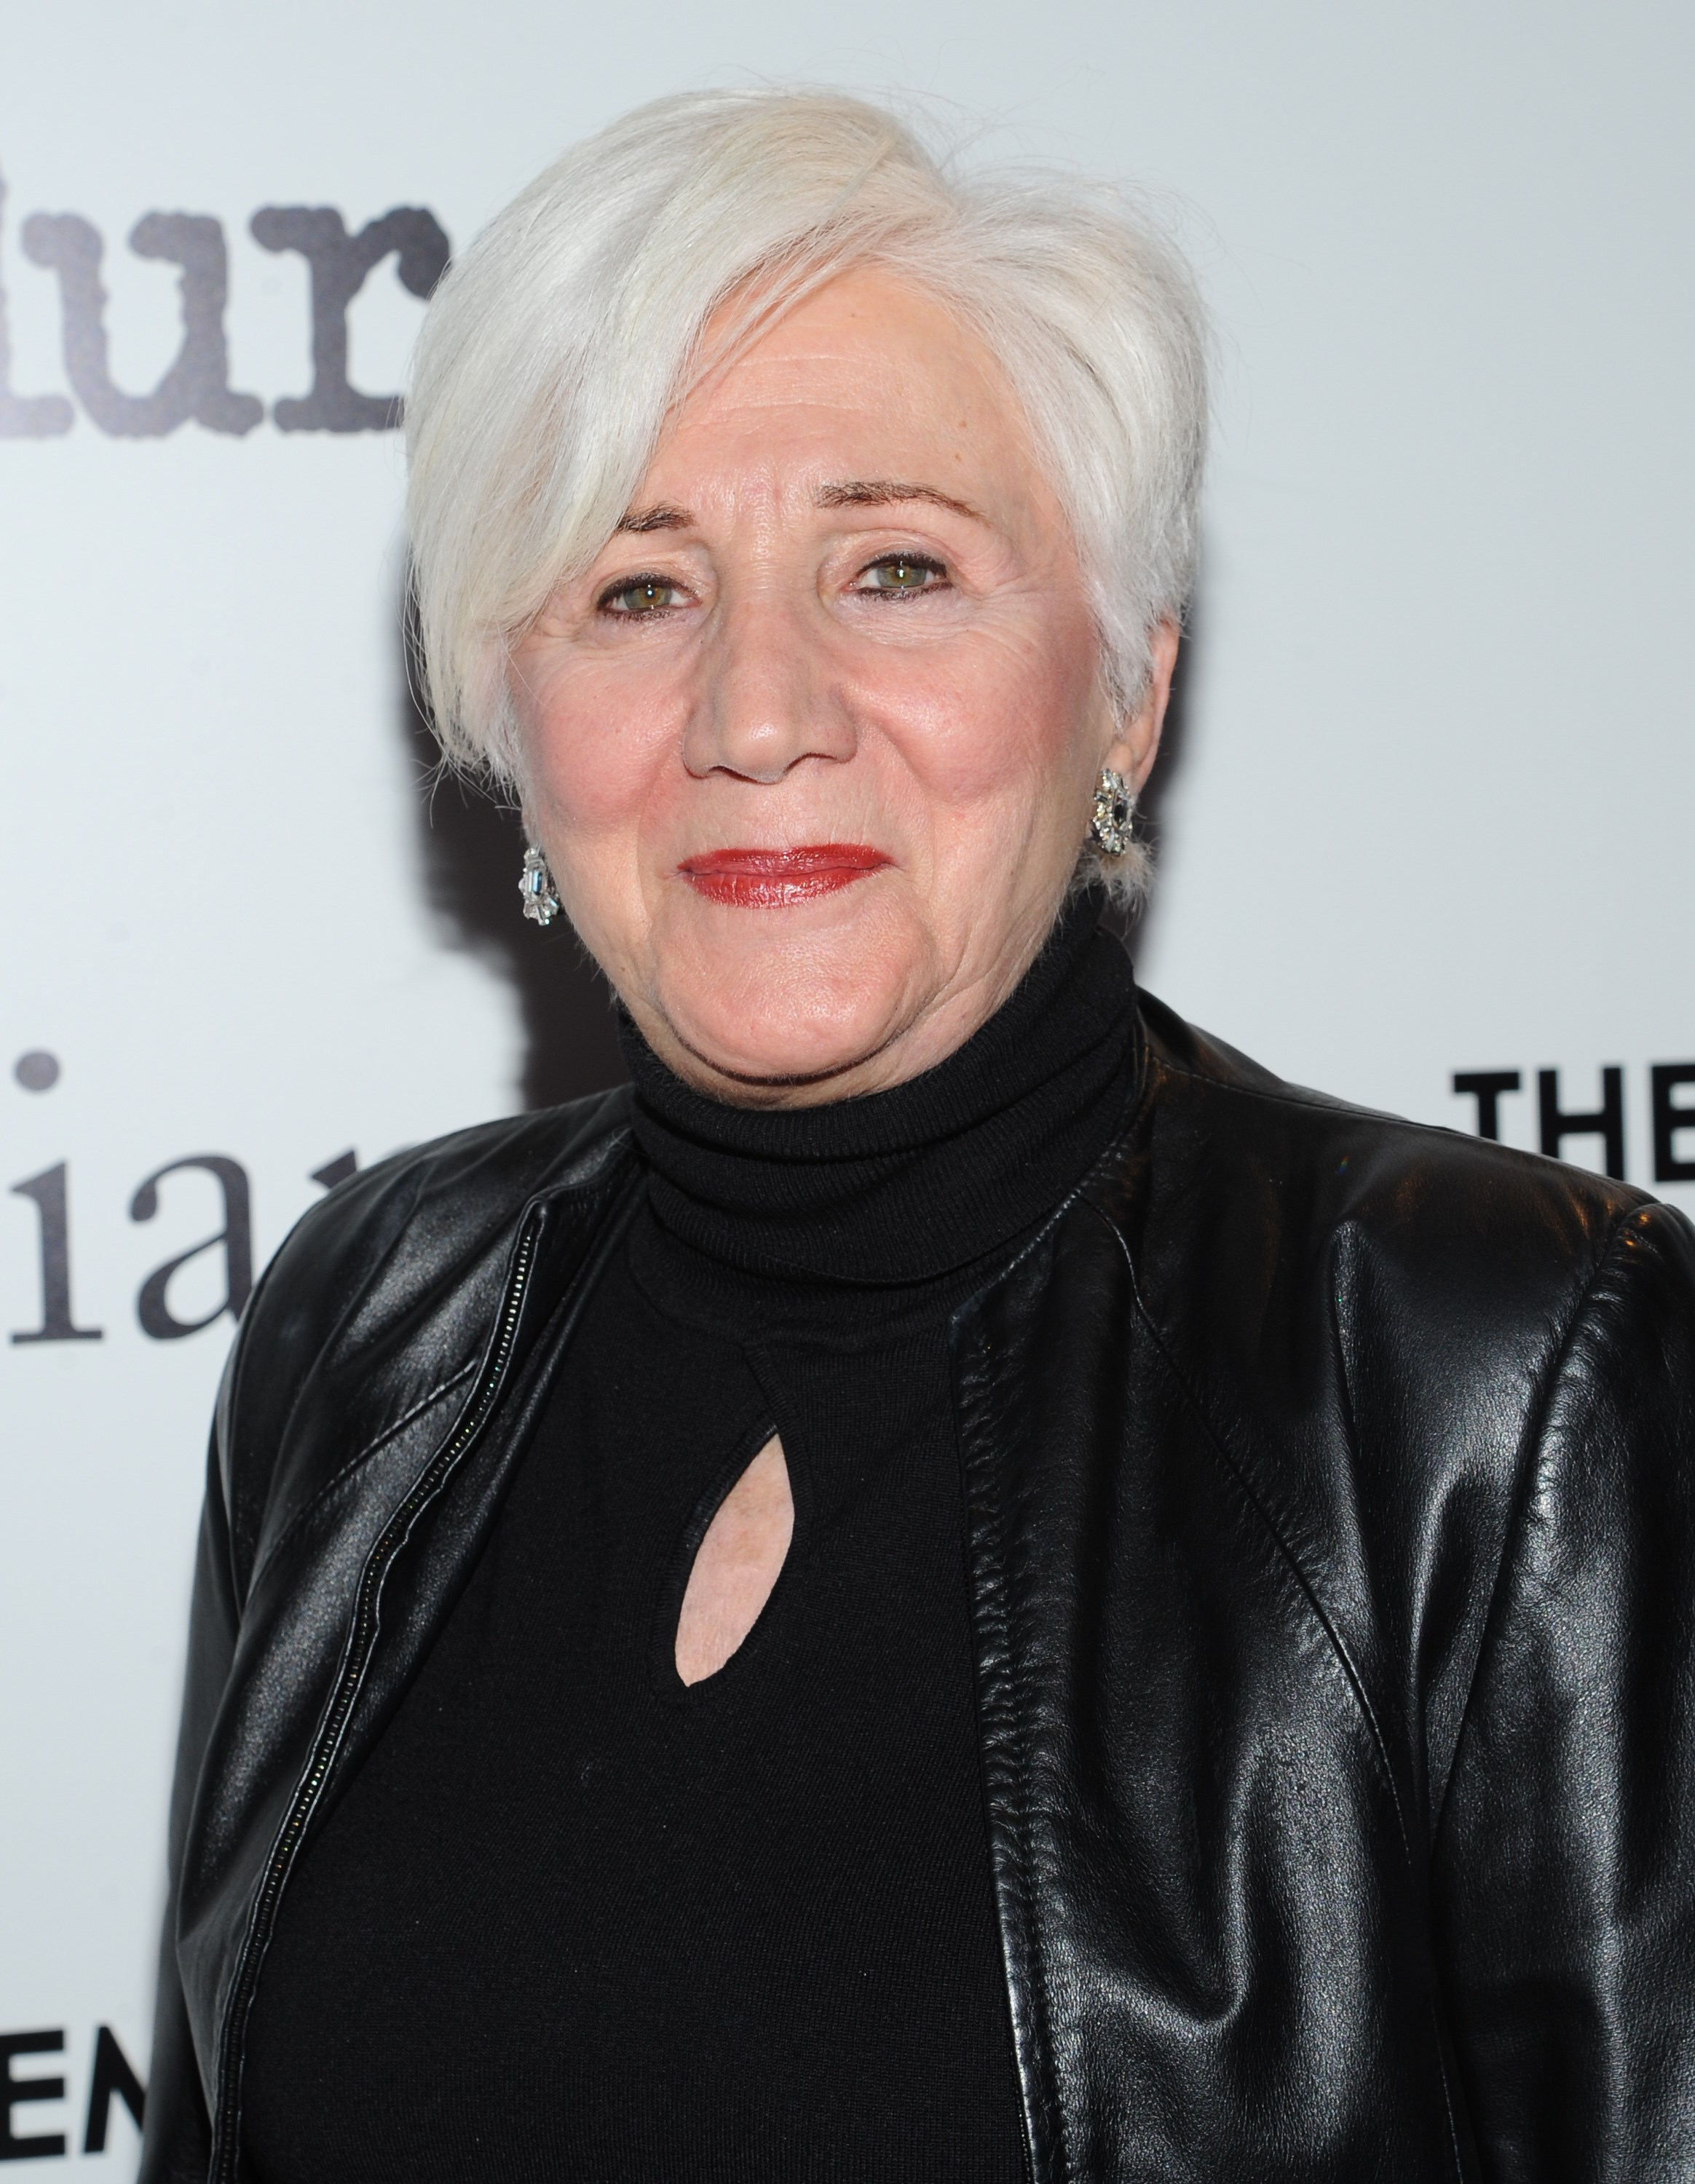 Olympia Dukakis | Known people - famous people news and